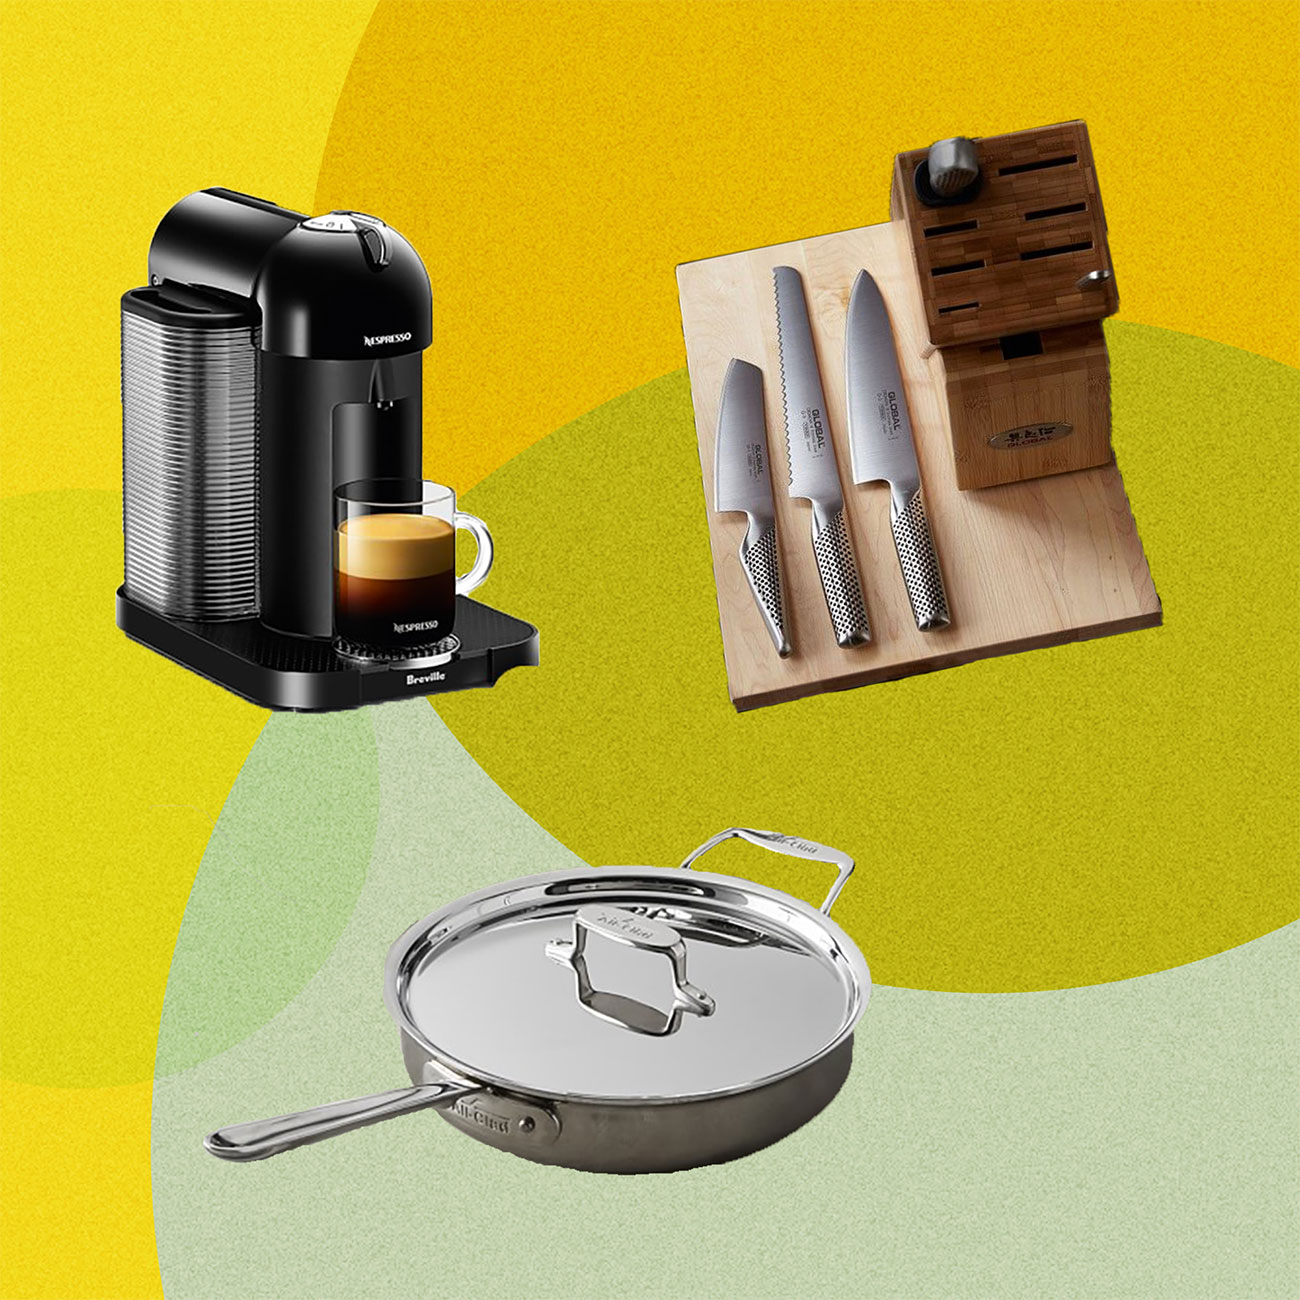 Kitchen items - frying pan, knife, espresso machine collaged against a geometric colorful background